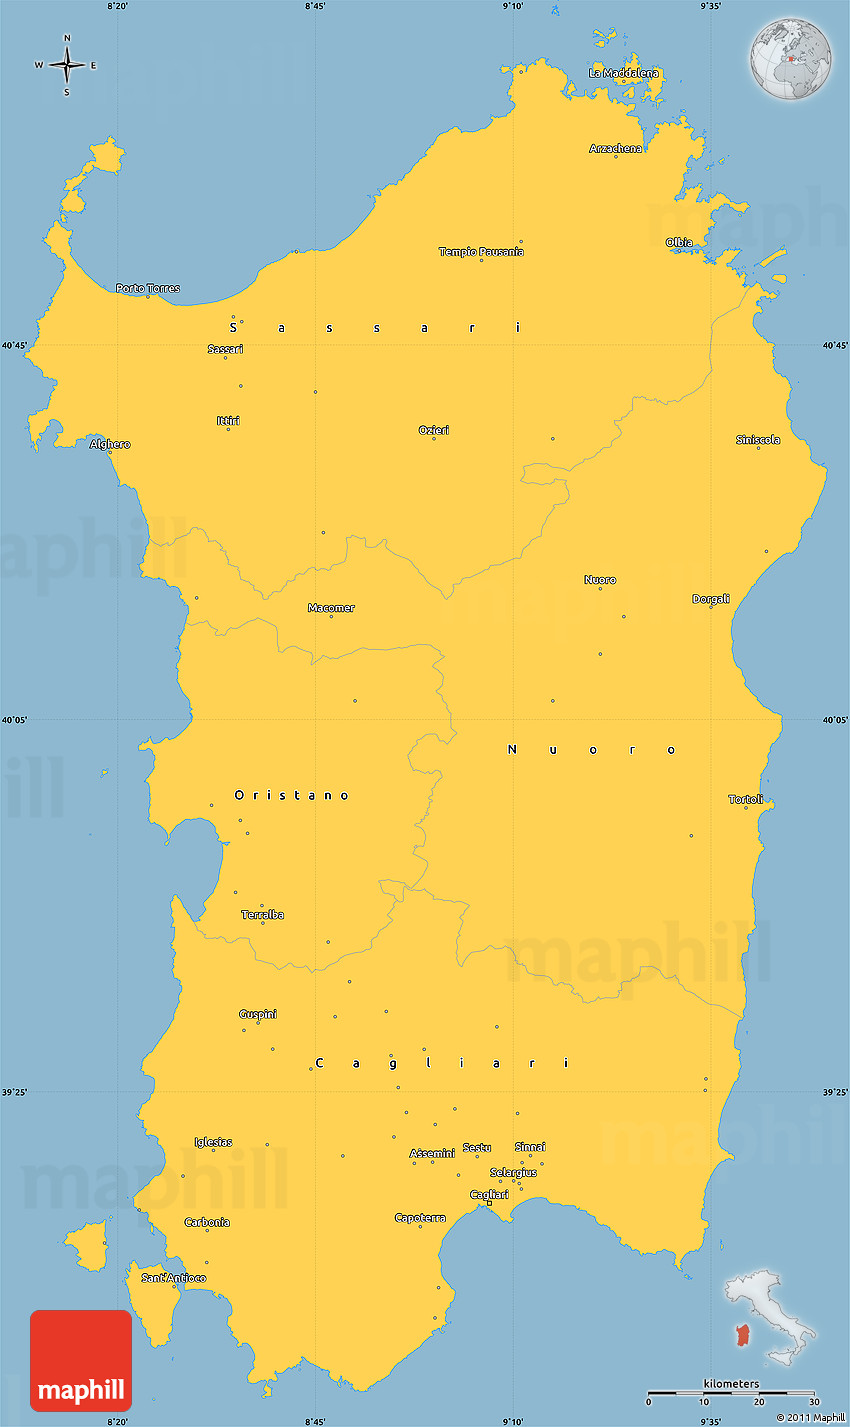 Pics Photos - Blank Simple Map Of Sardegna